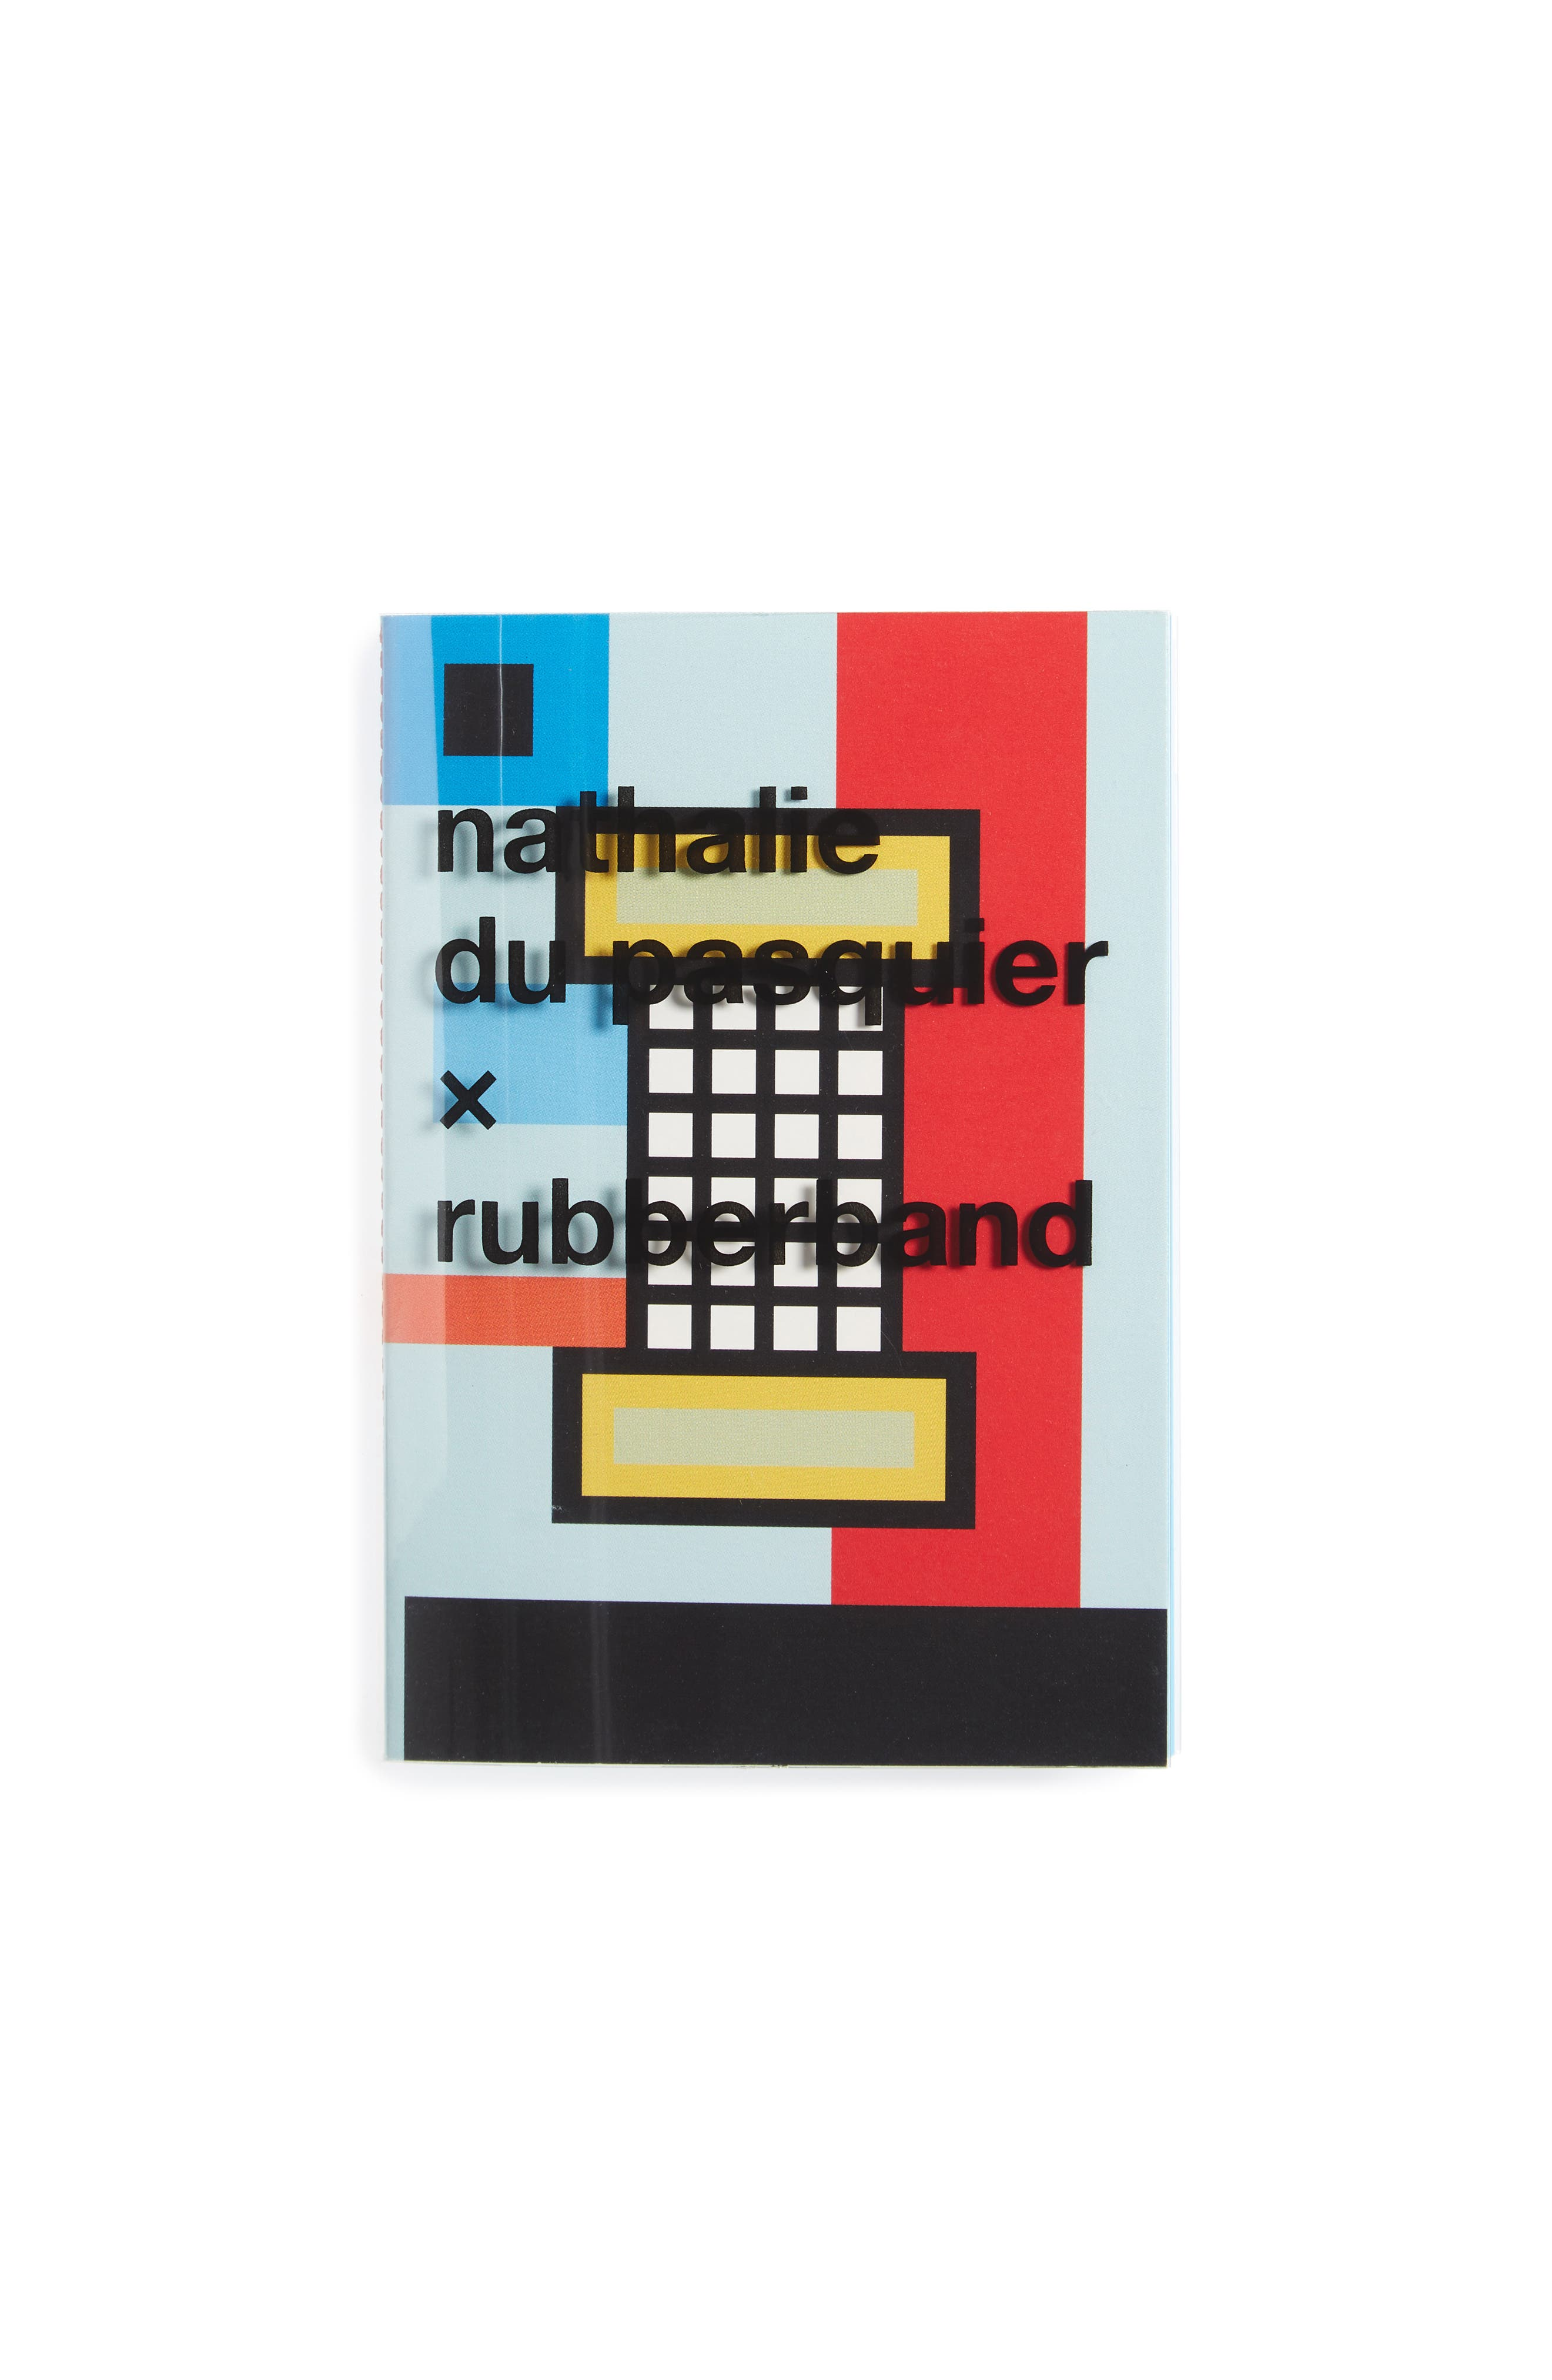 Alternate Image 1 Selected - MoMA Design Store Nathalie Du Pasquier For Rubberband Small Notebook